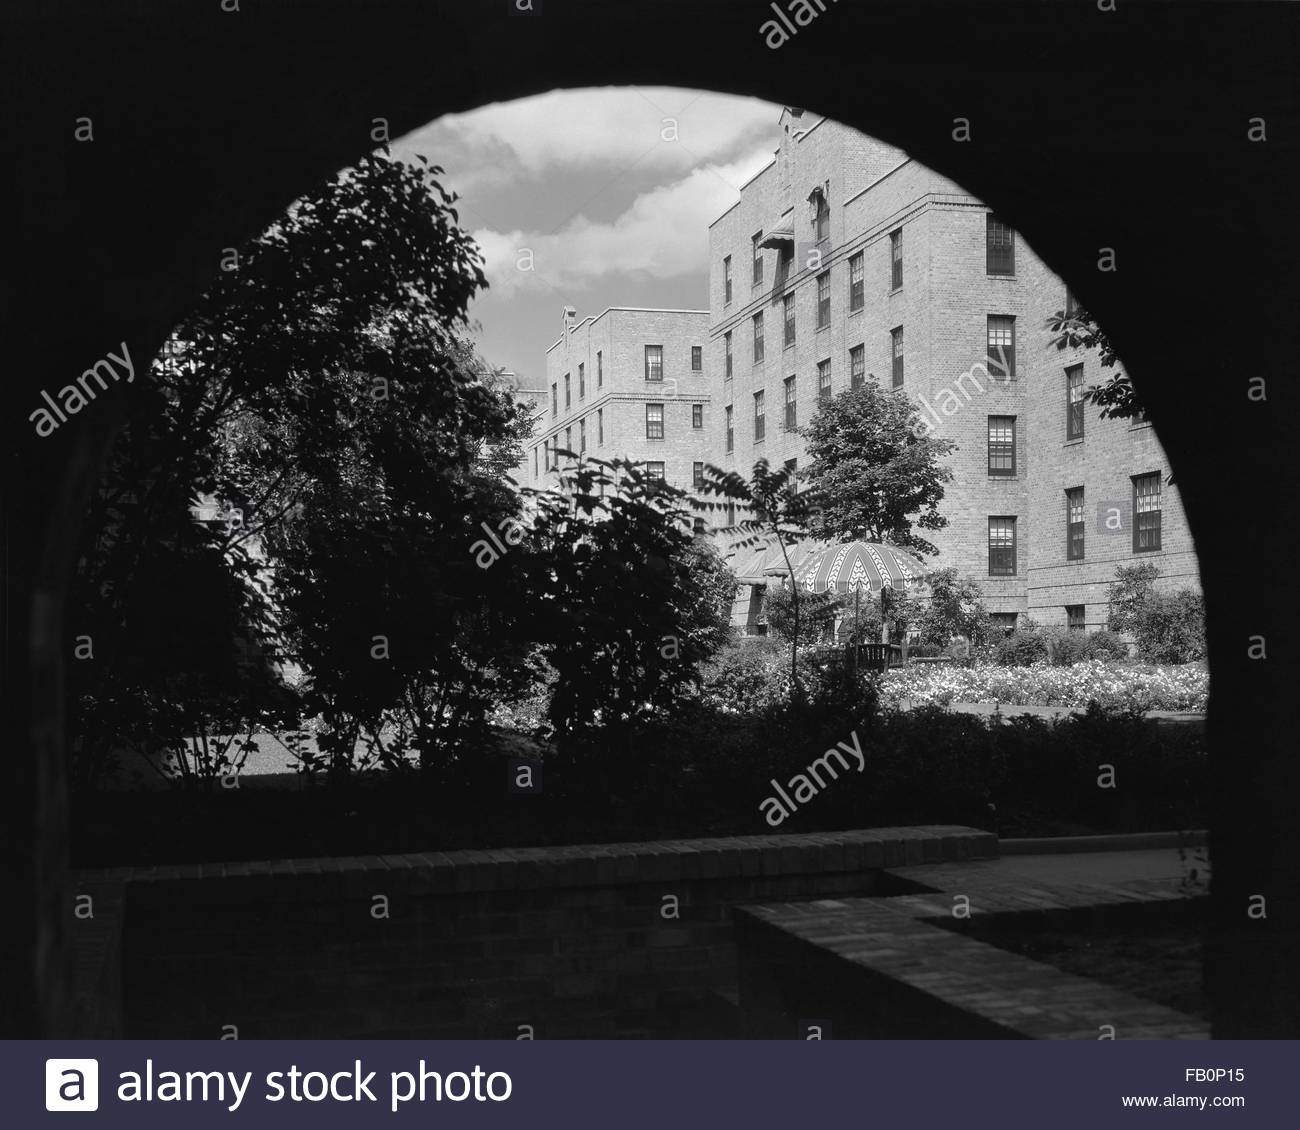 Marshall field garden apartments in chicago ill 1933 - Marshall field garden apartments ...